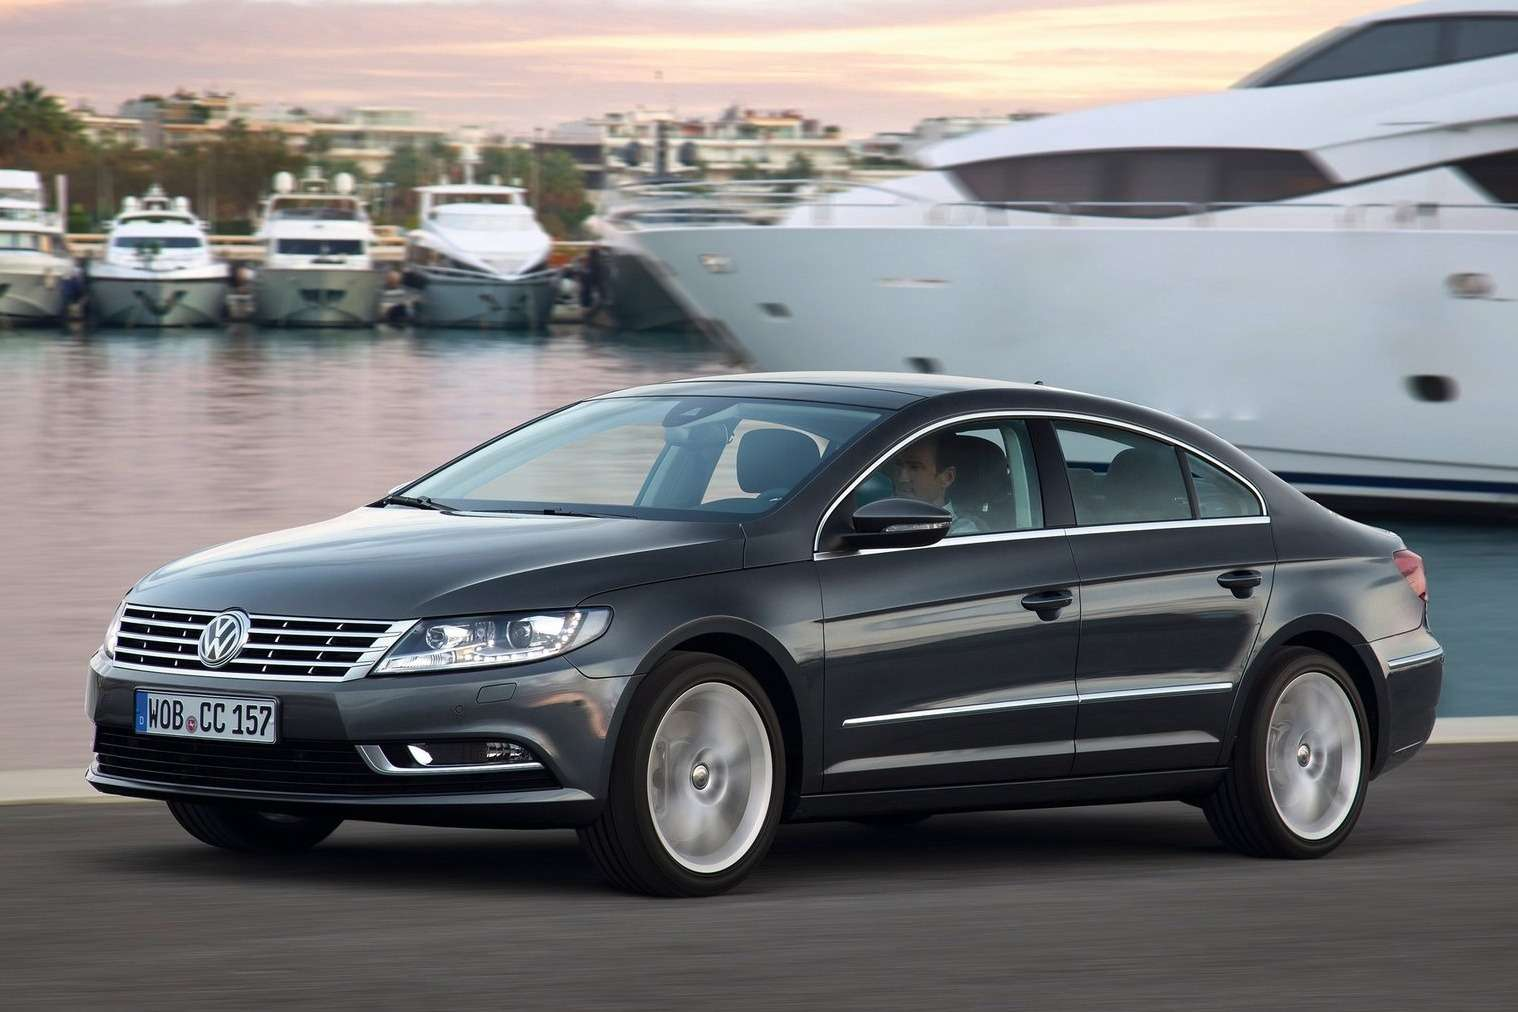 Volkswagen-CC_2013_1600x1200_wallpaper_04